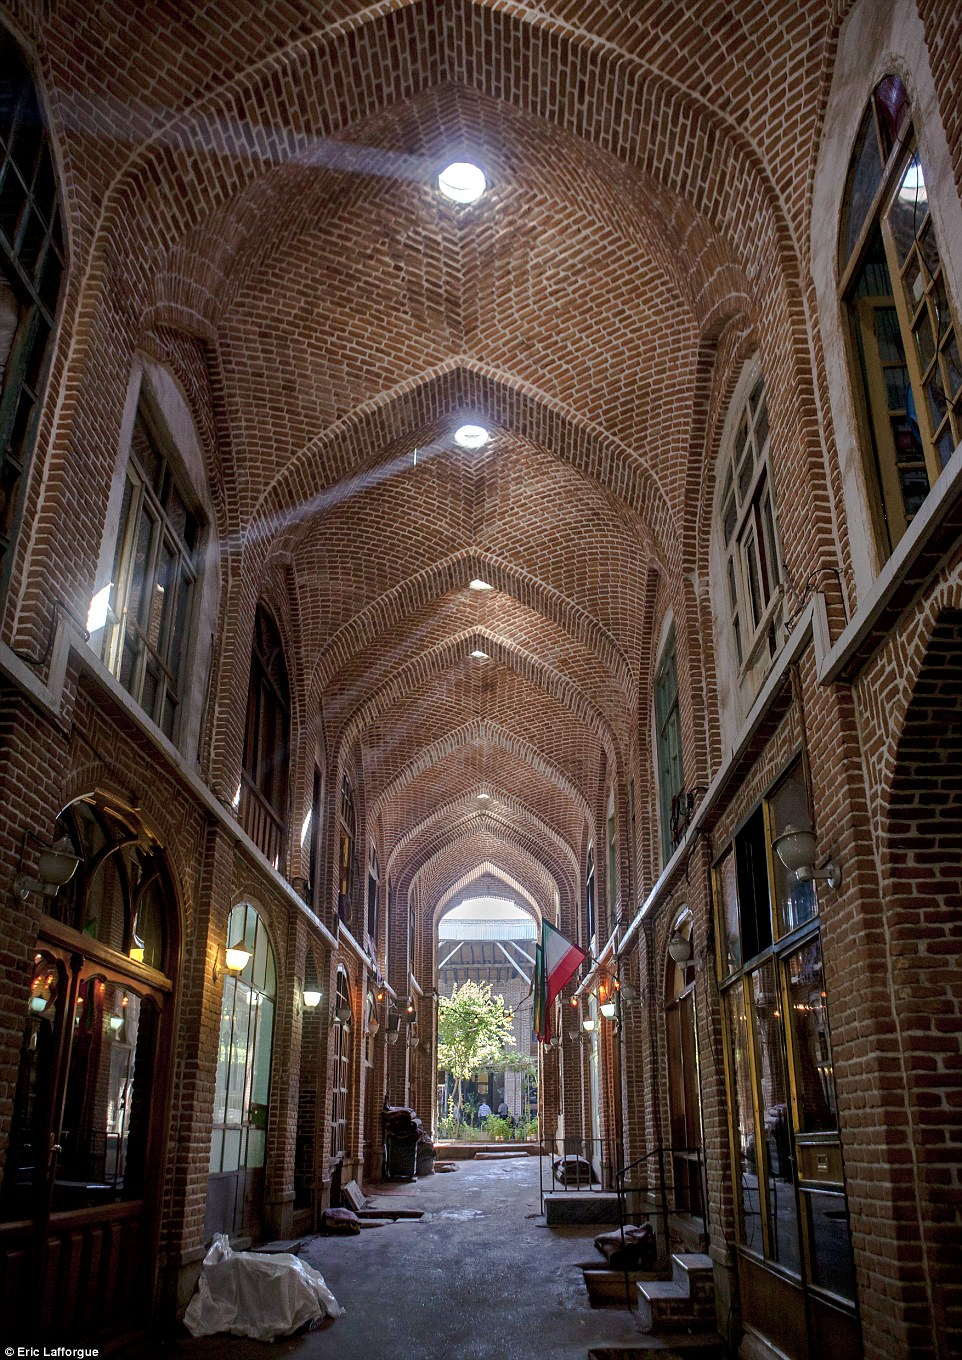 Rays of light inside the Old Bazaar, Tabriz. It is one of the oldest bazaars in the Middle East and the largest covered bazaar in the world